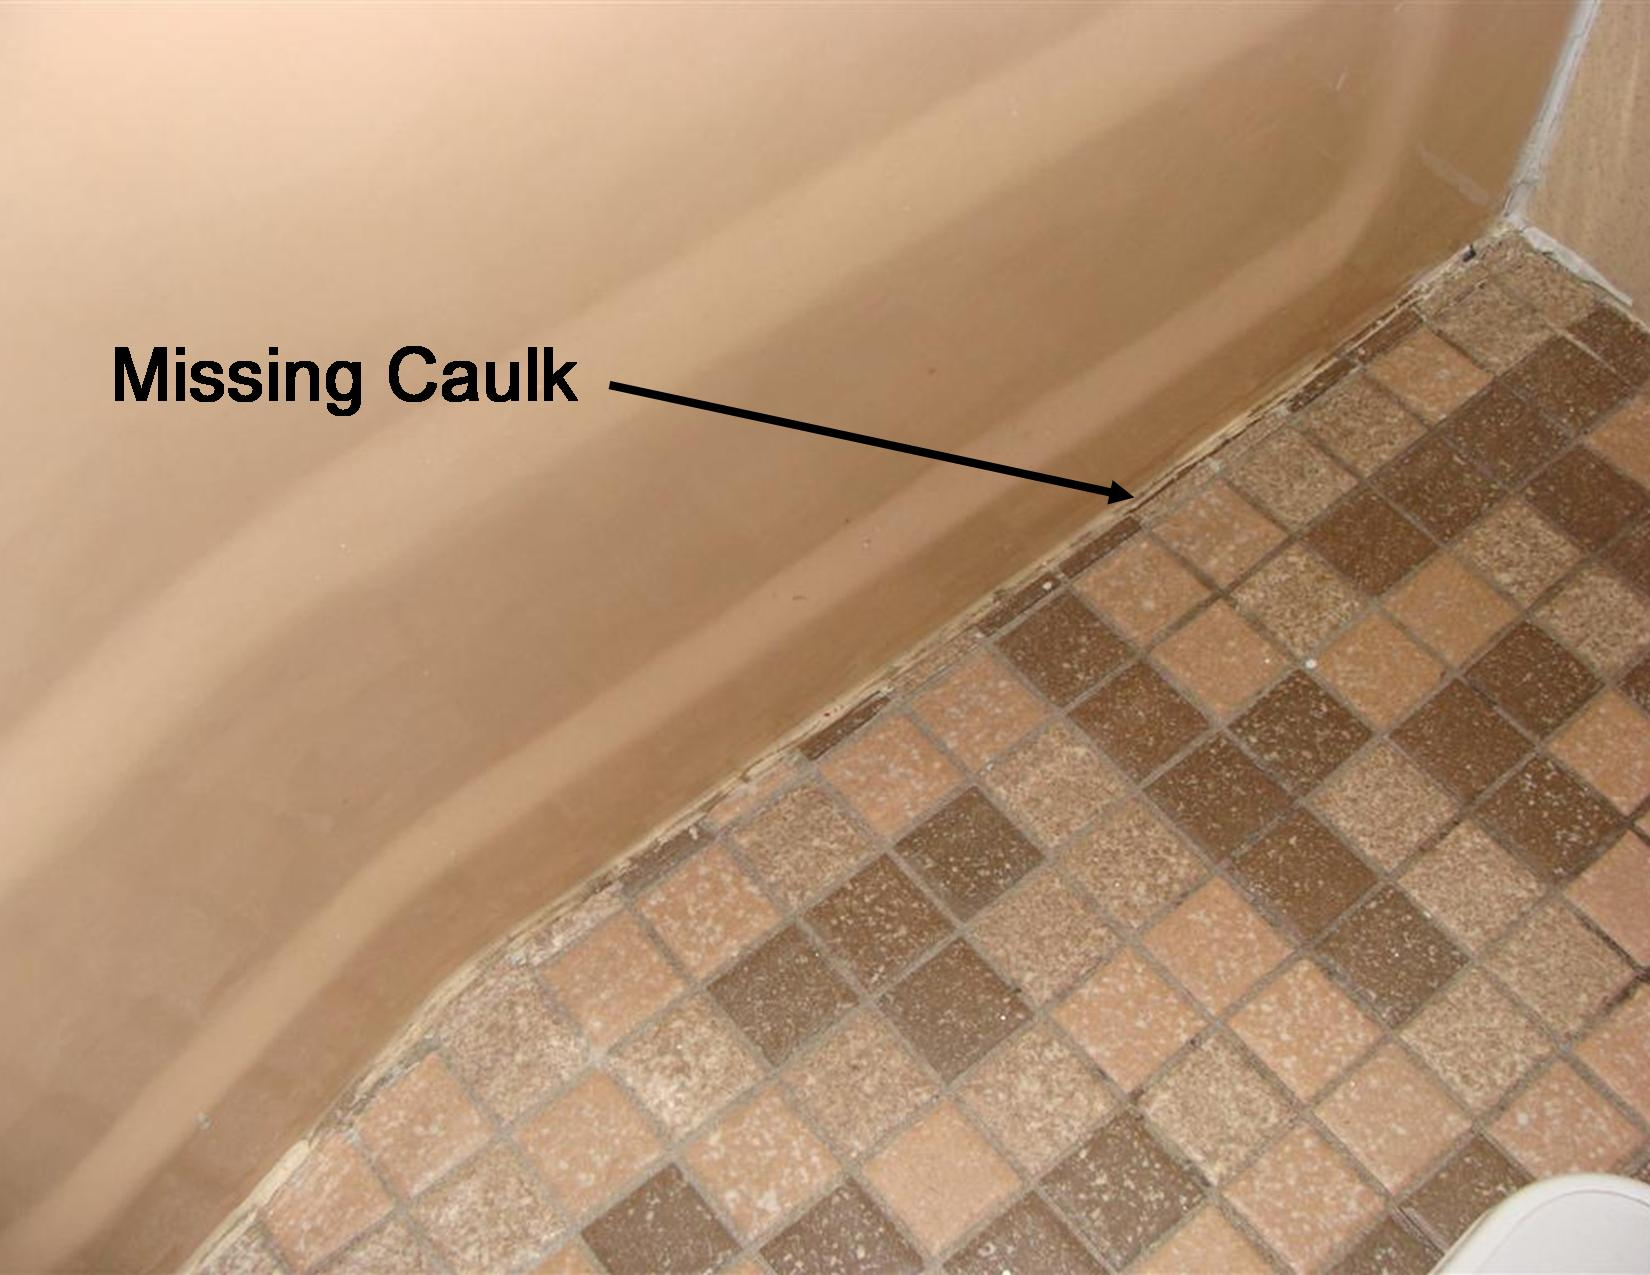 How To Find Shower Leaks StarTribunecom - Caulking shower base